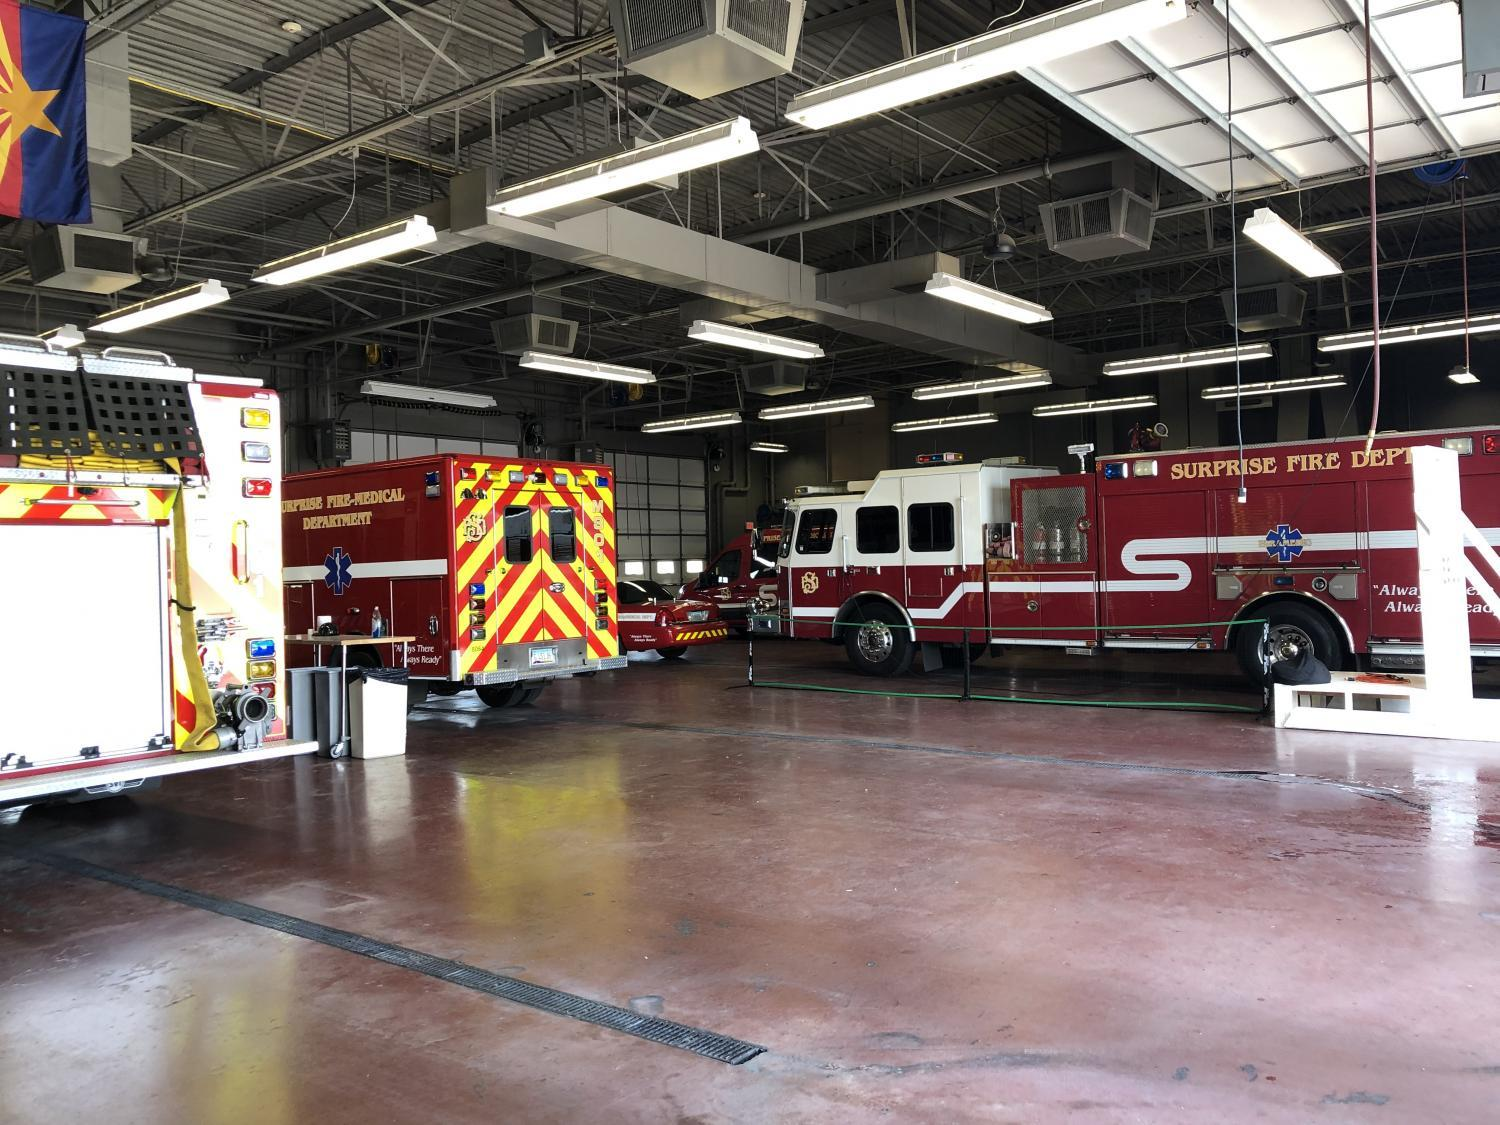 Fire Station 301 in Surprise